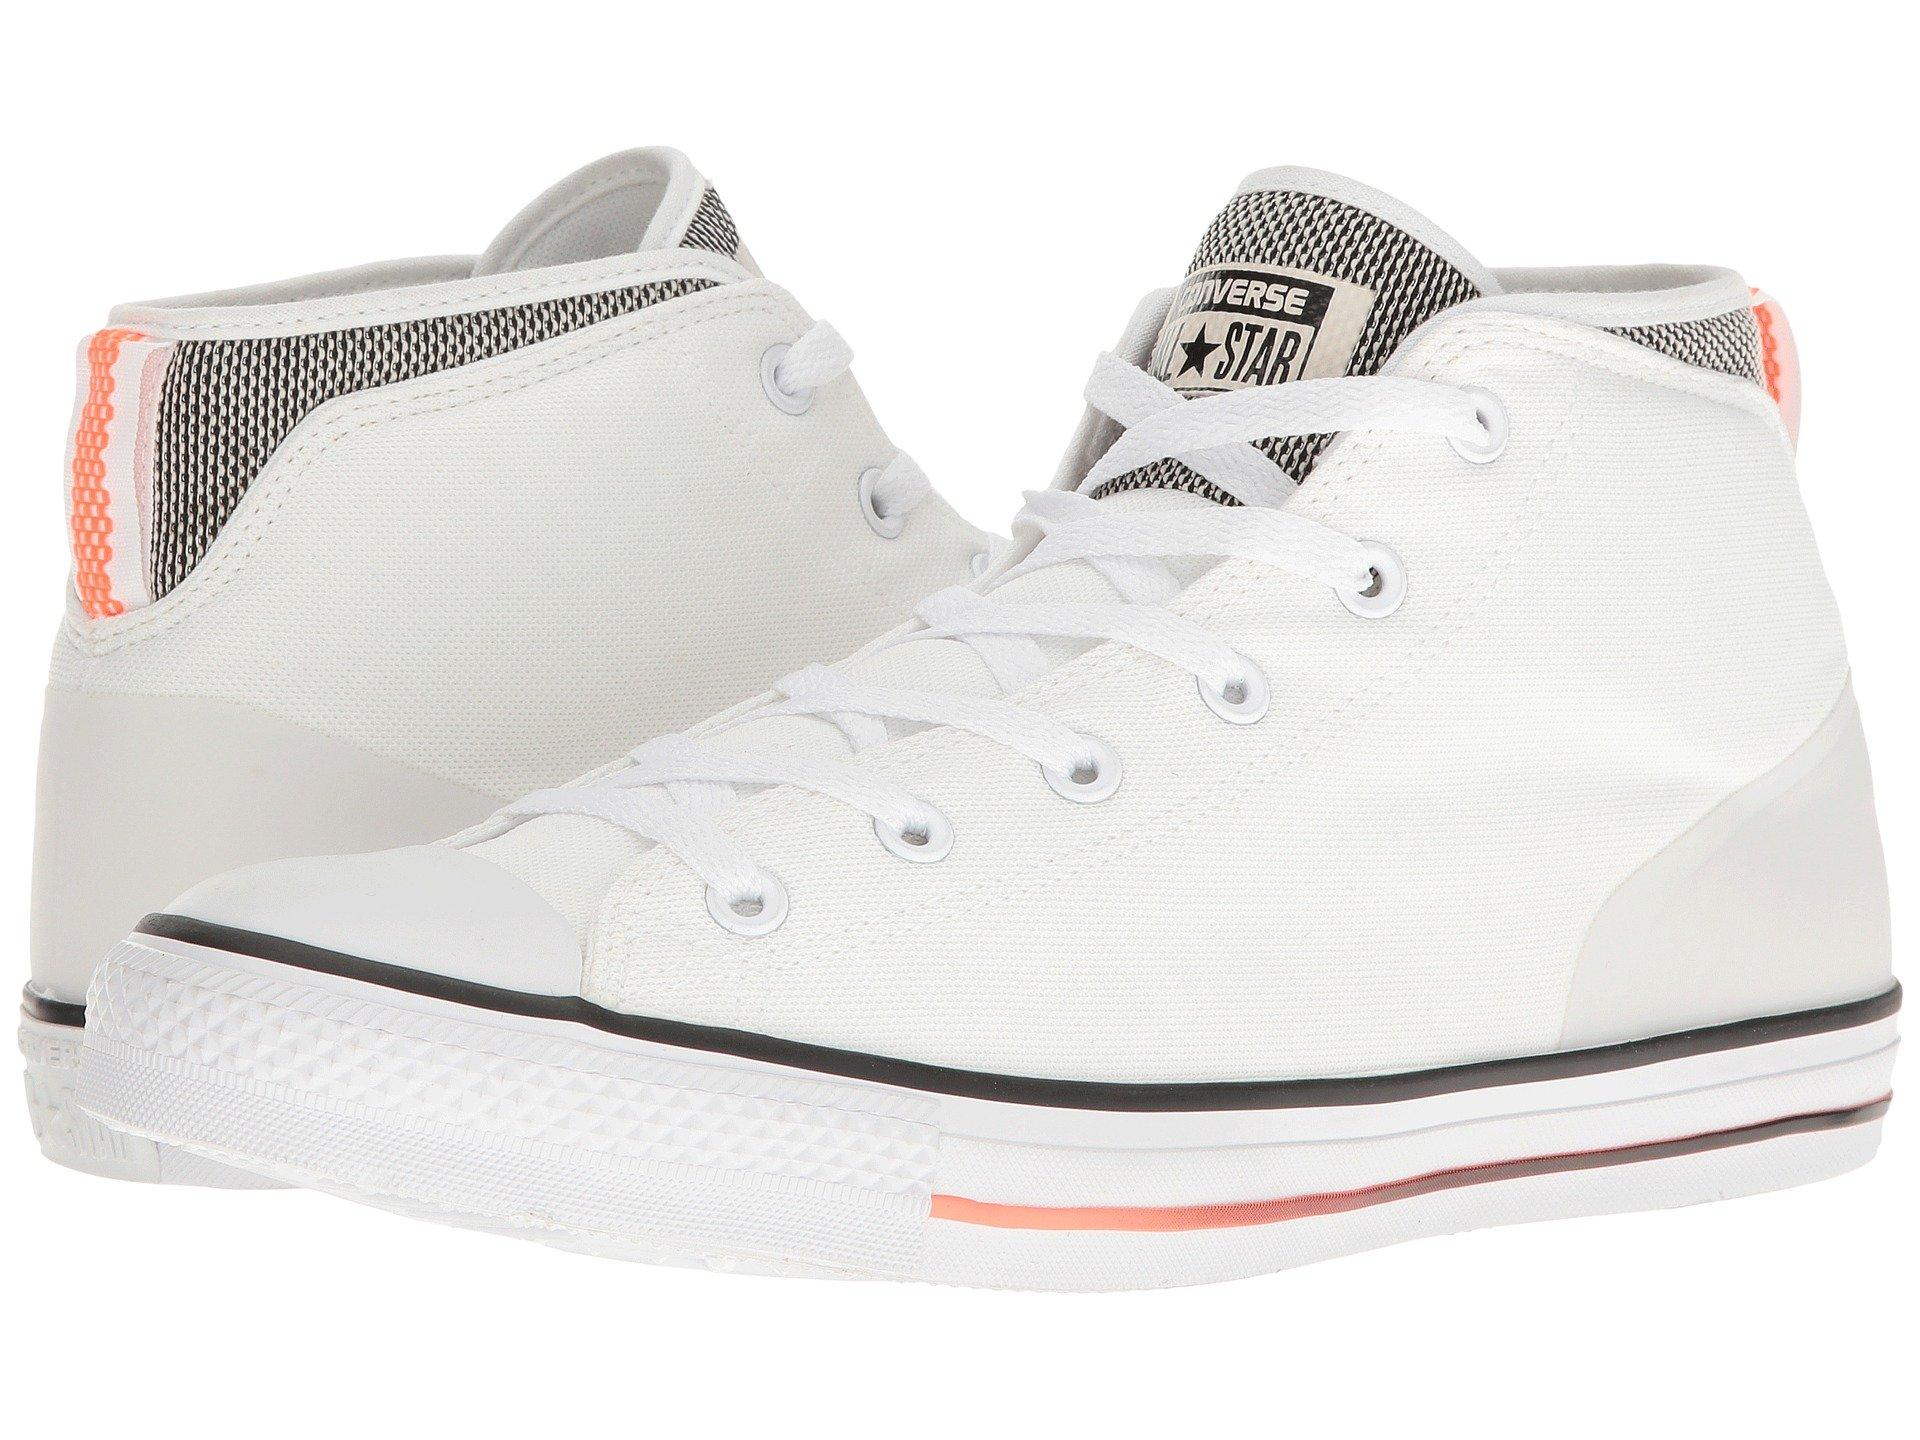 c14157a52b85 Converse Chuck Taylor® All Star® Syde Street Summer Mid In White Black